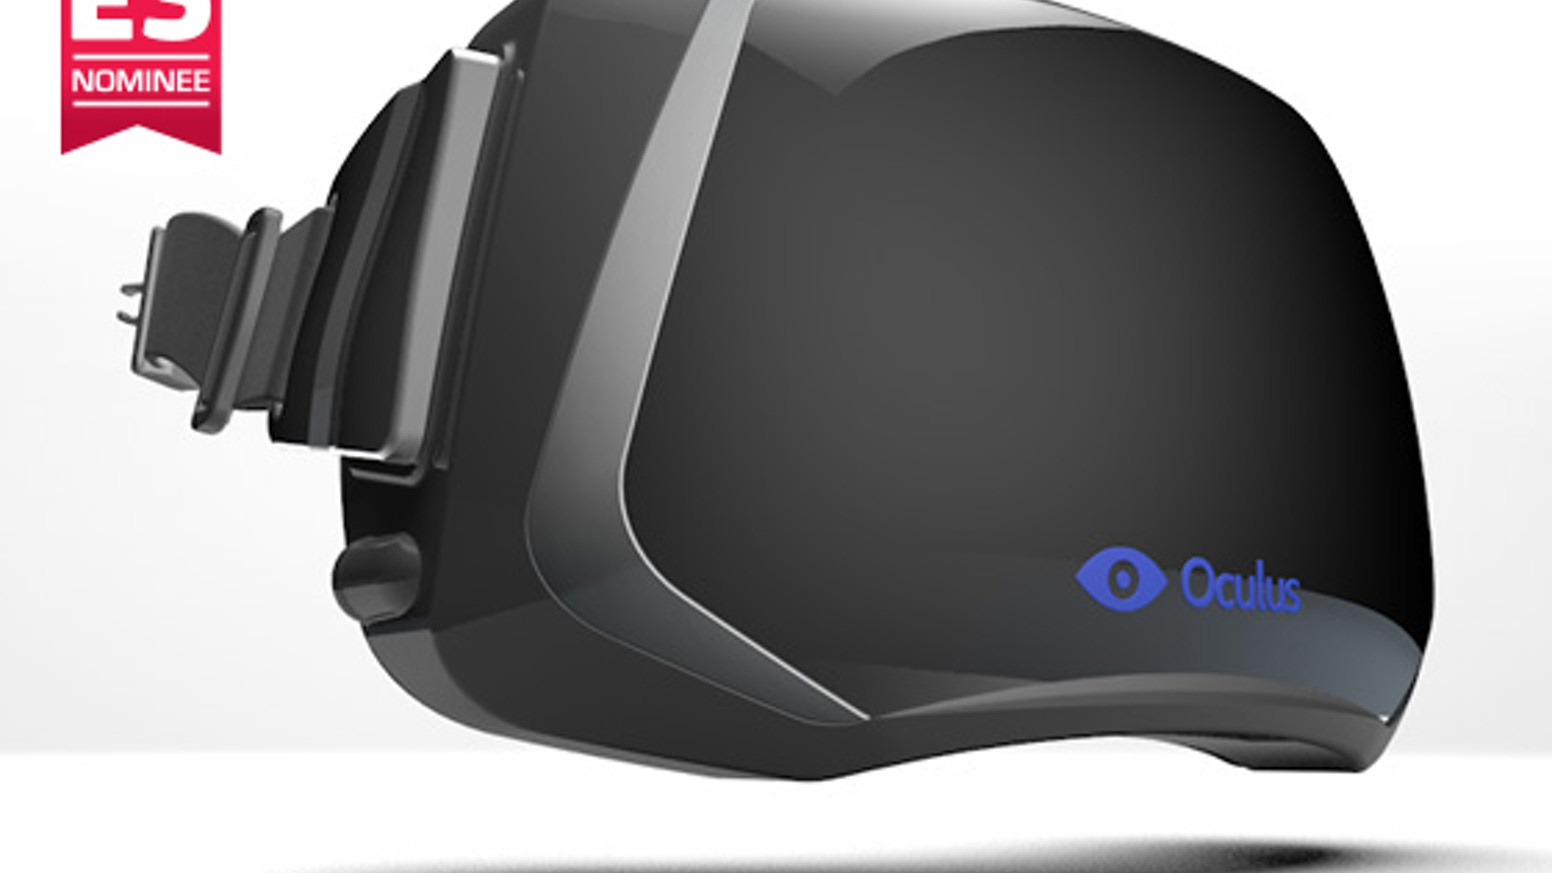 Developer kit for the Oculus Rift - the first truly immersive virtual reality headset for video games.